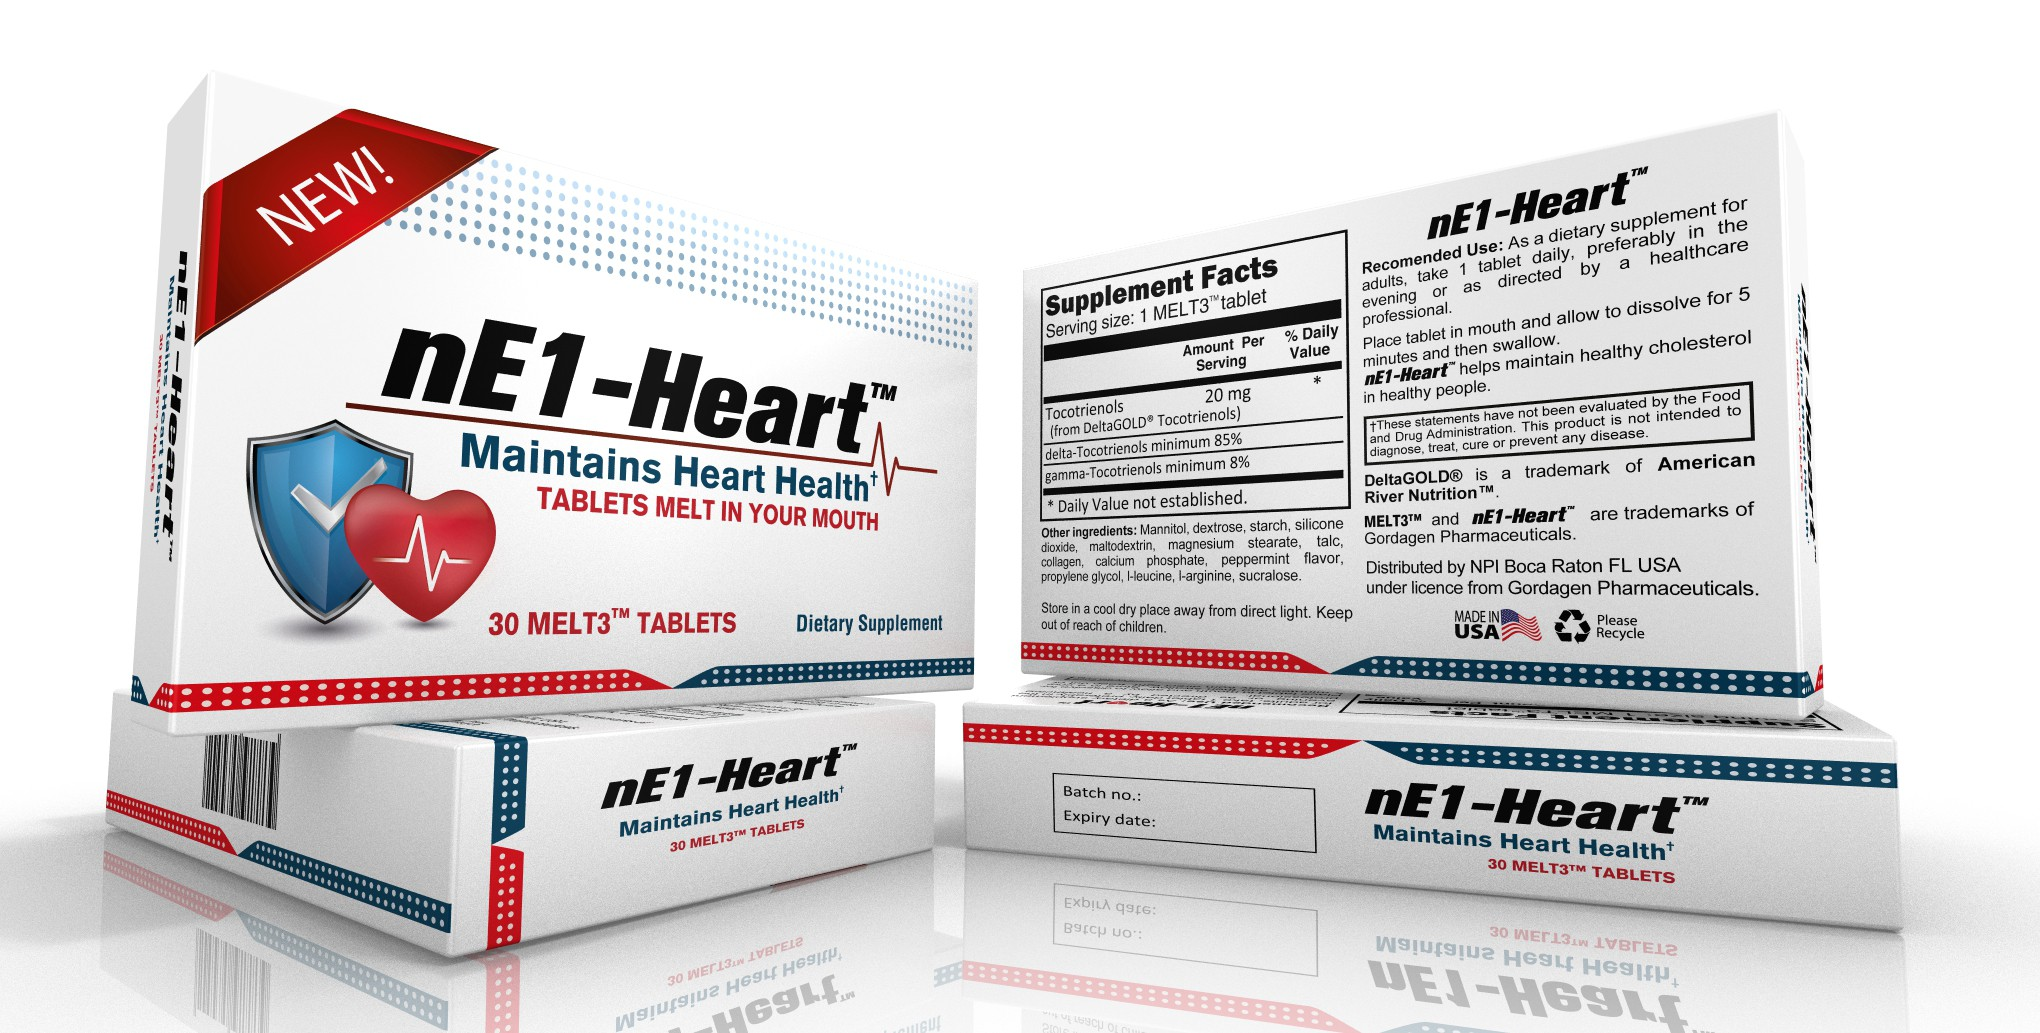 Design an eye catching package for a new heart health supplement and help improve people's health.